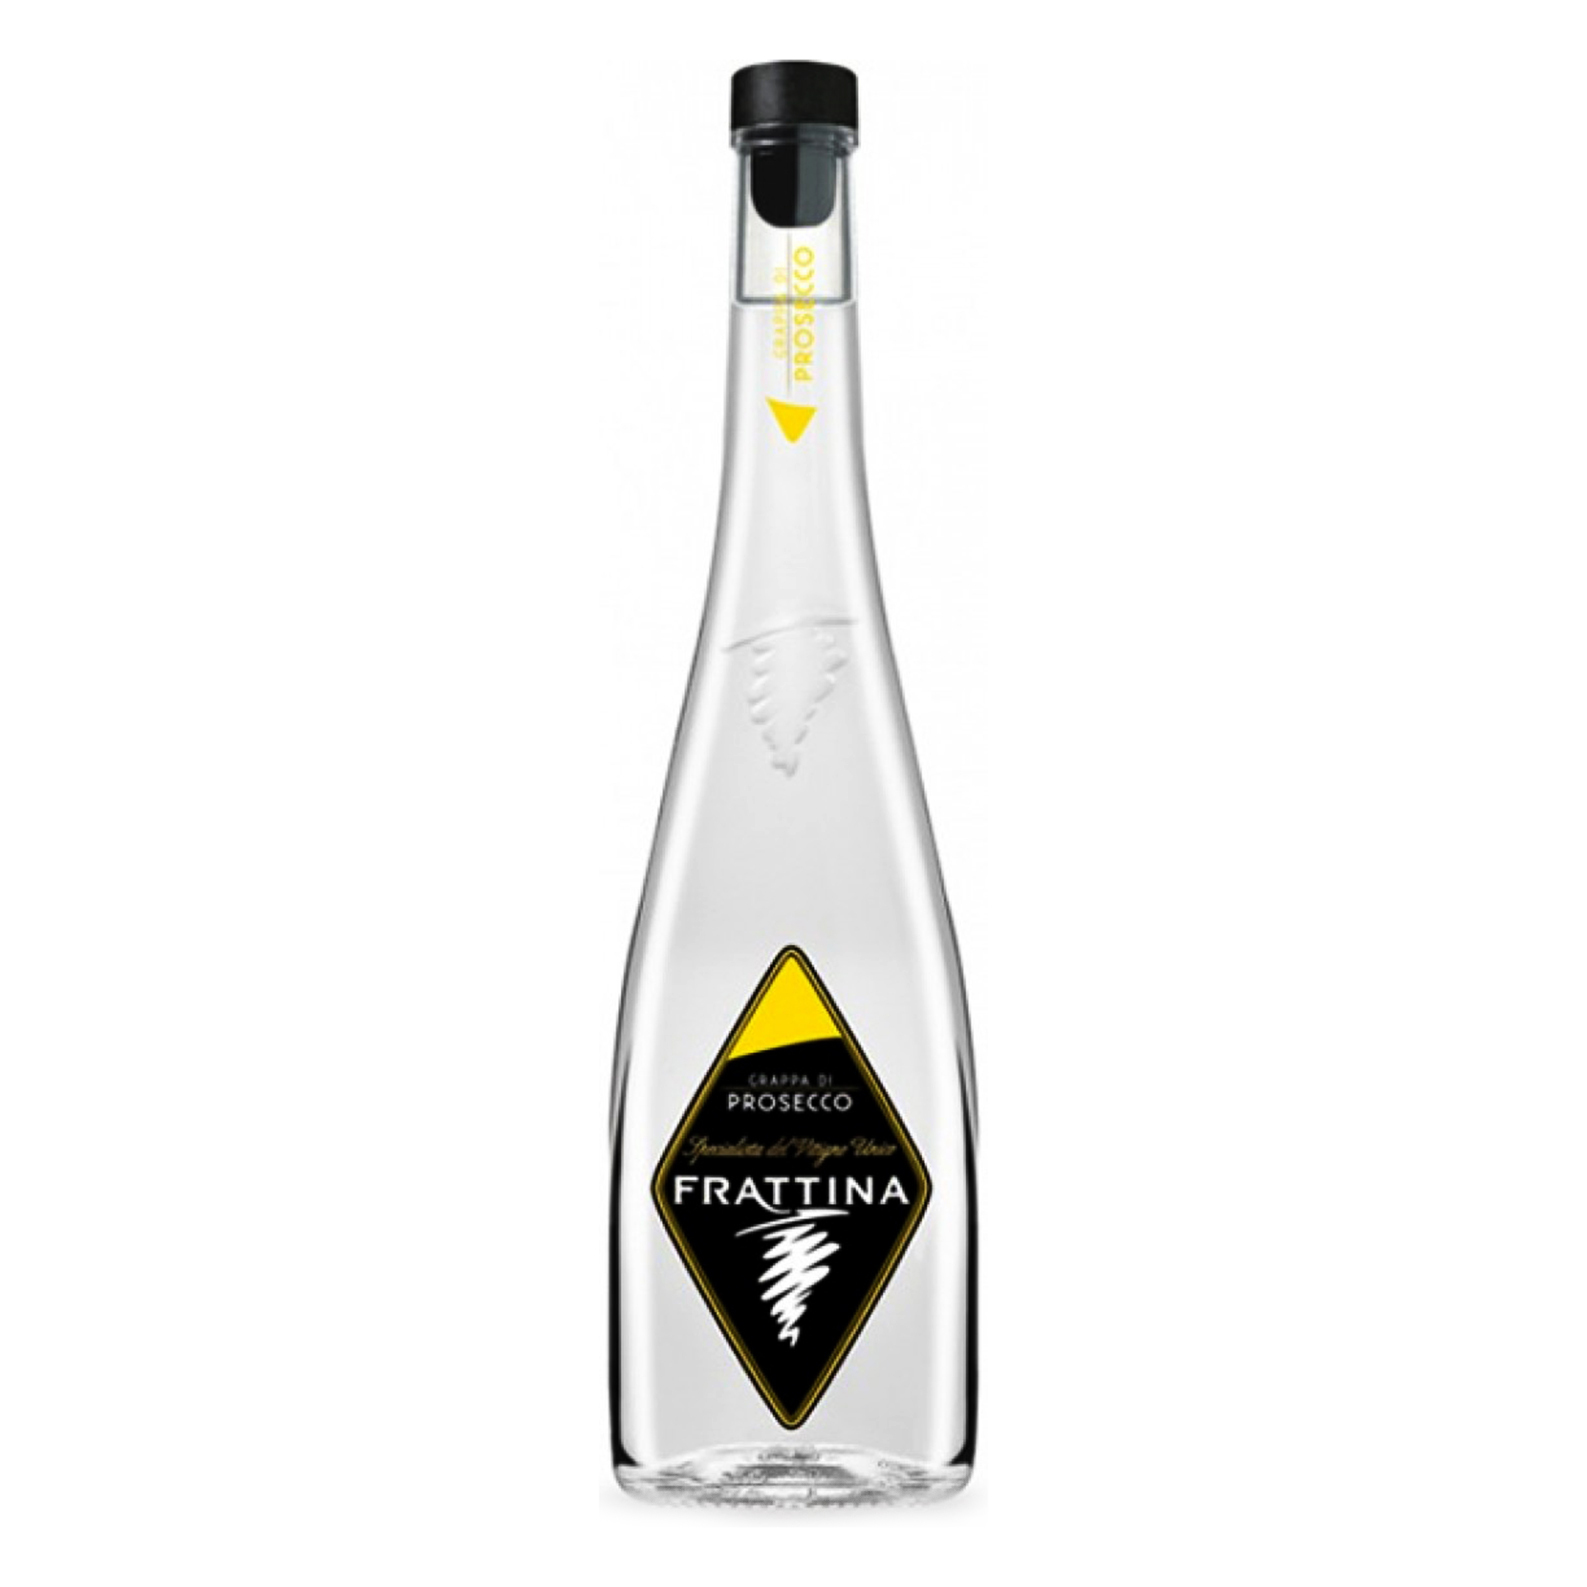 Grappa di Prosecco - 0.70 - Grappa - Frattina